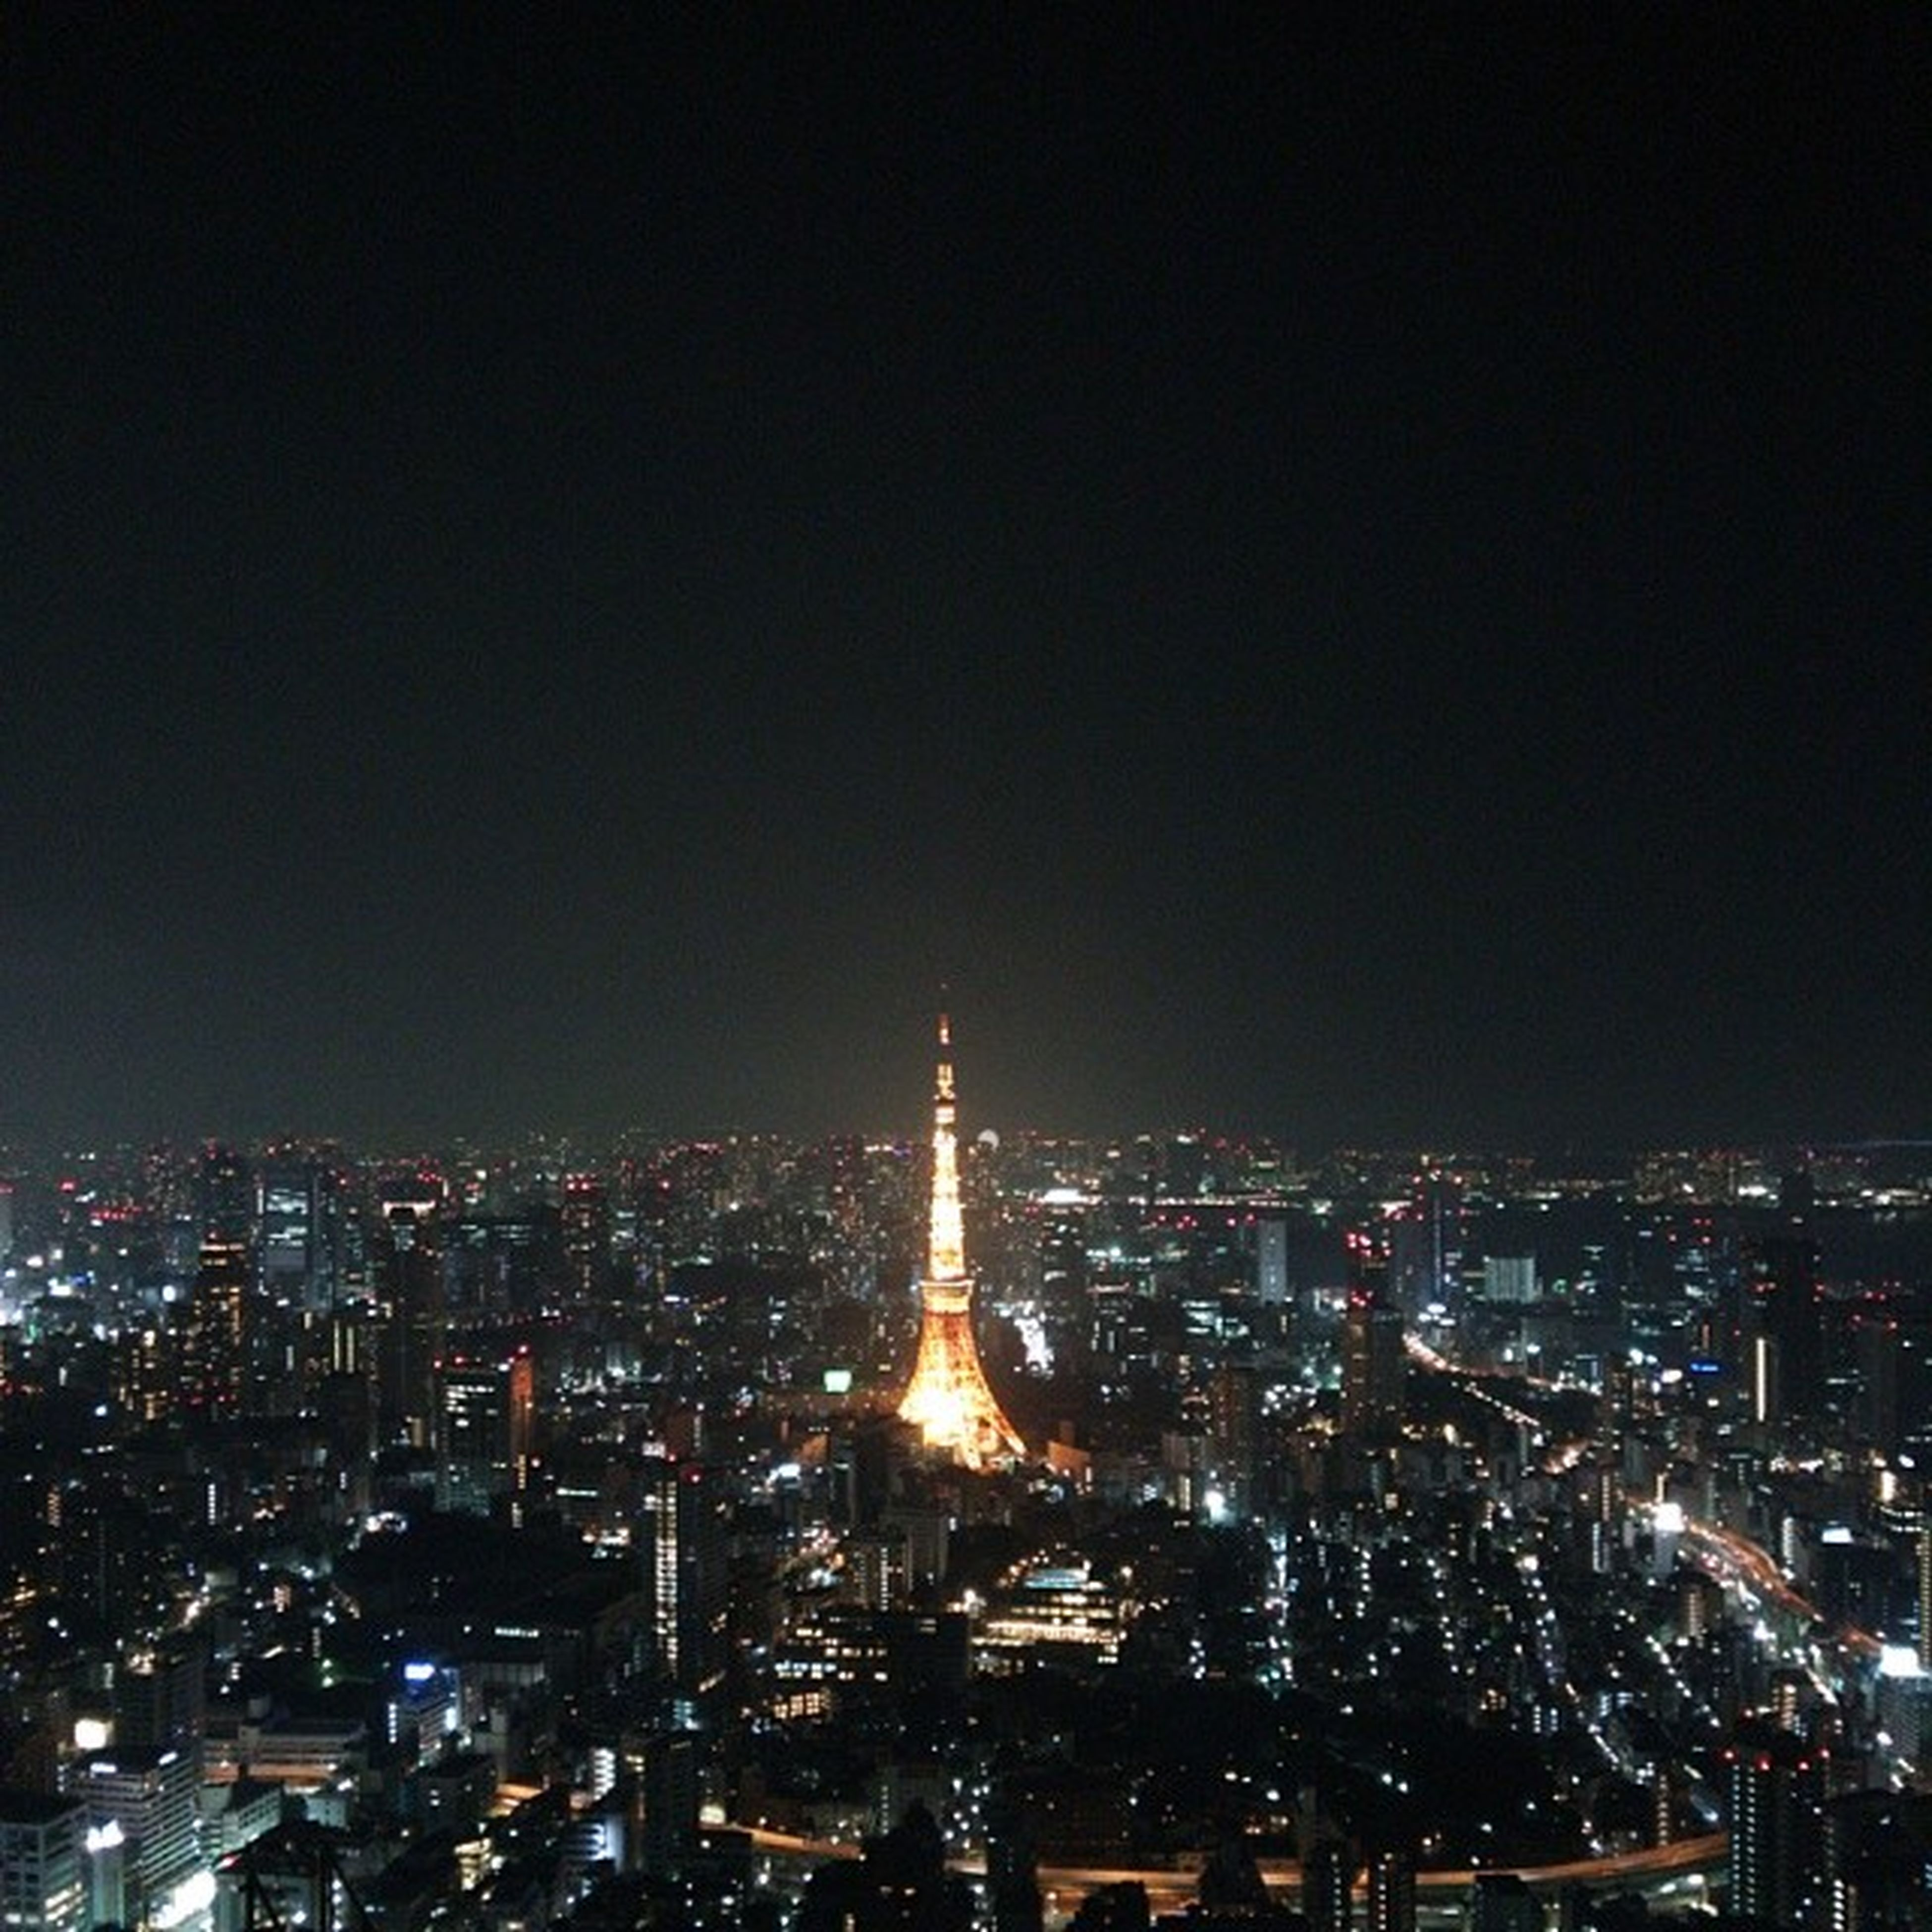 night, illuminated, city, cityscape, architecture, building exterior, built structure, crowded, skyscraper, modern, high angle view, capital cities, tower, city life, copy space, tall - high, office building, clear sky, sky, travel destinations